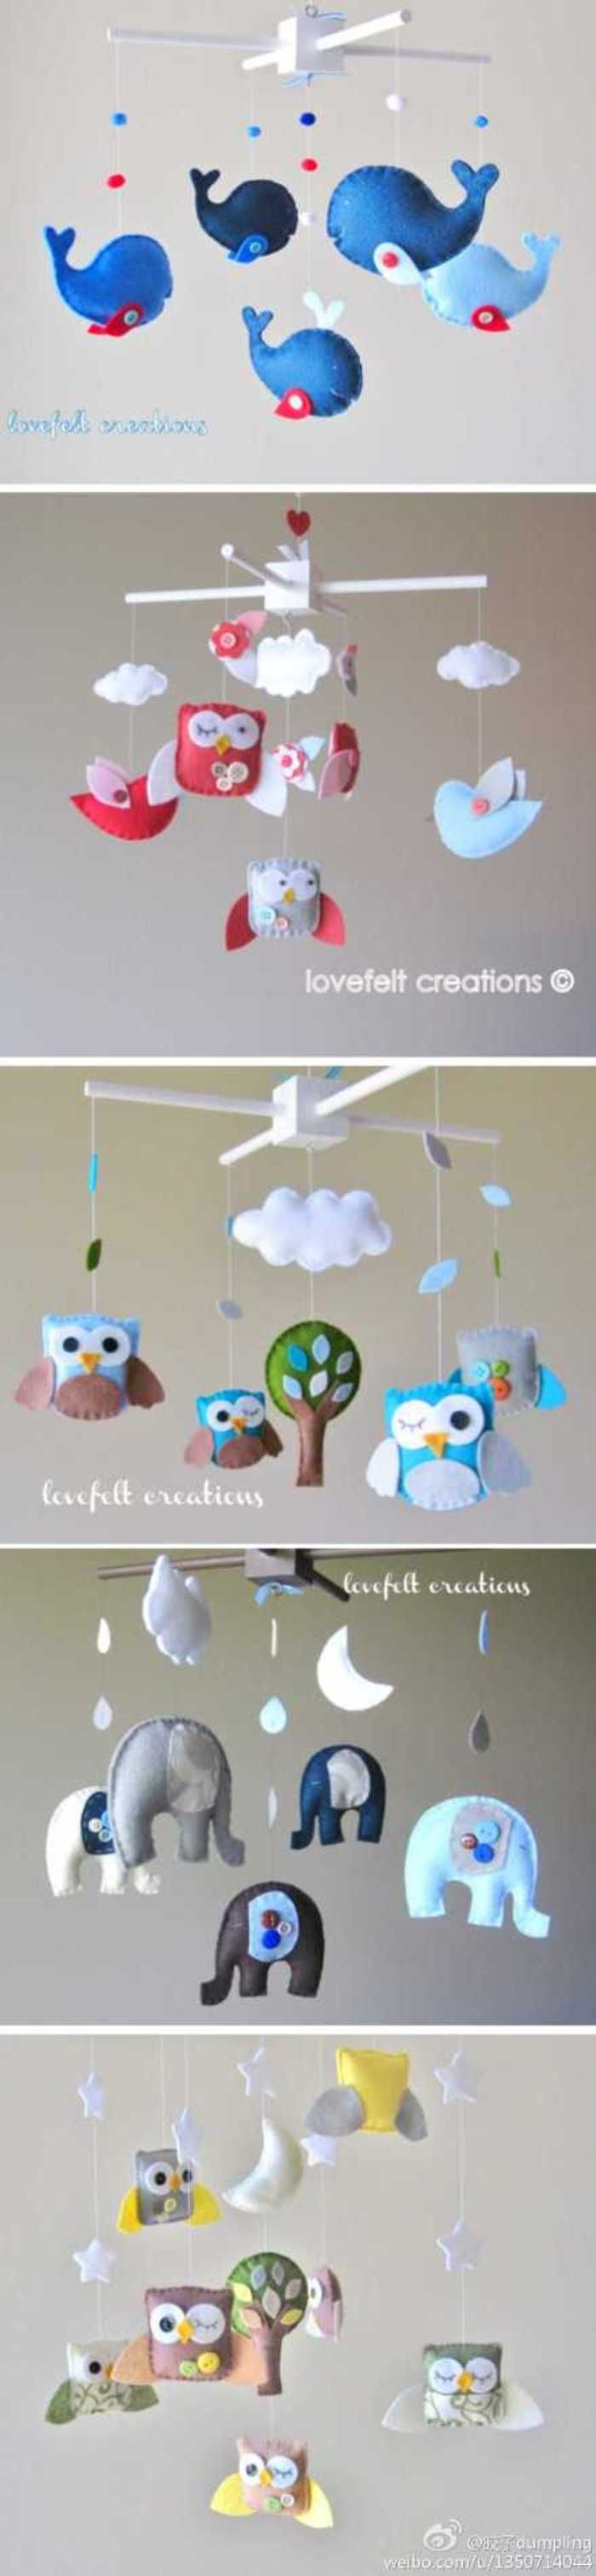 I should try out crafting felt baby mobiles.